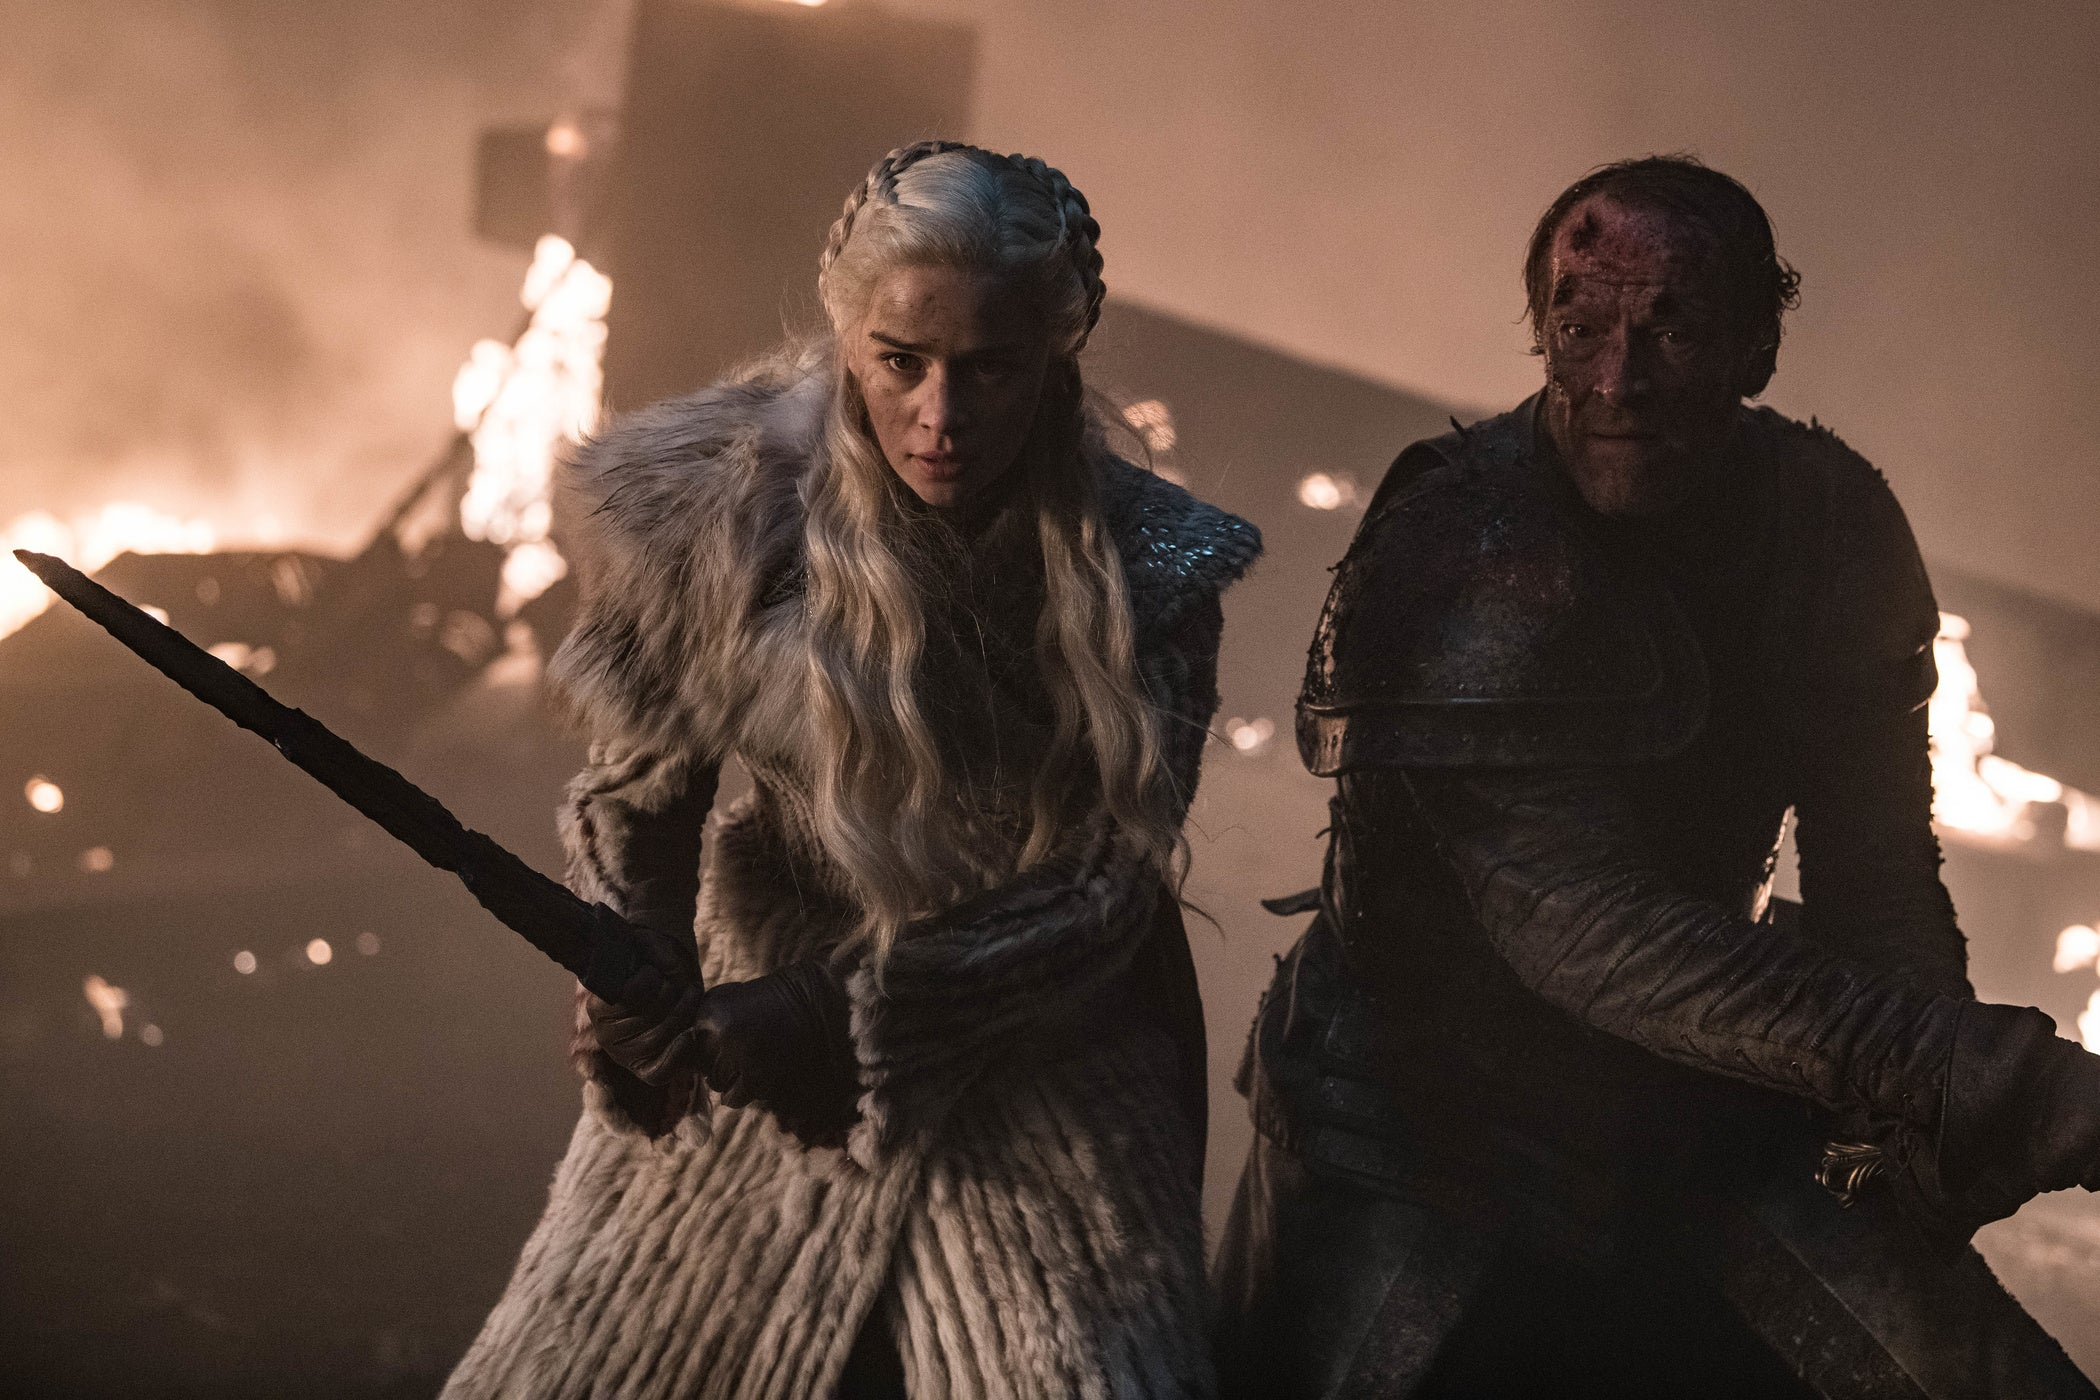 Game Of Thrones Season 8 episode 3 Jorah Mormont Daenerys Targaryen